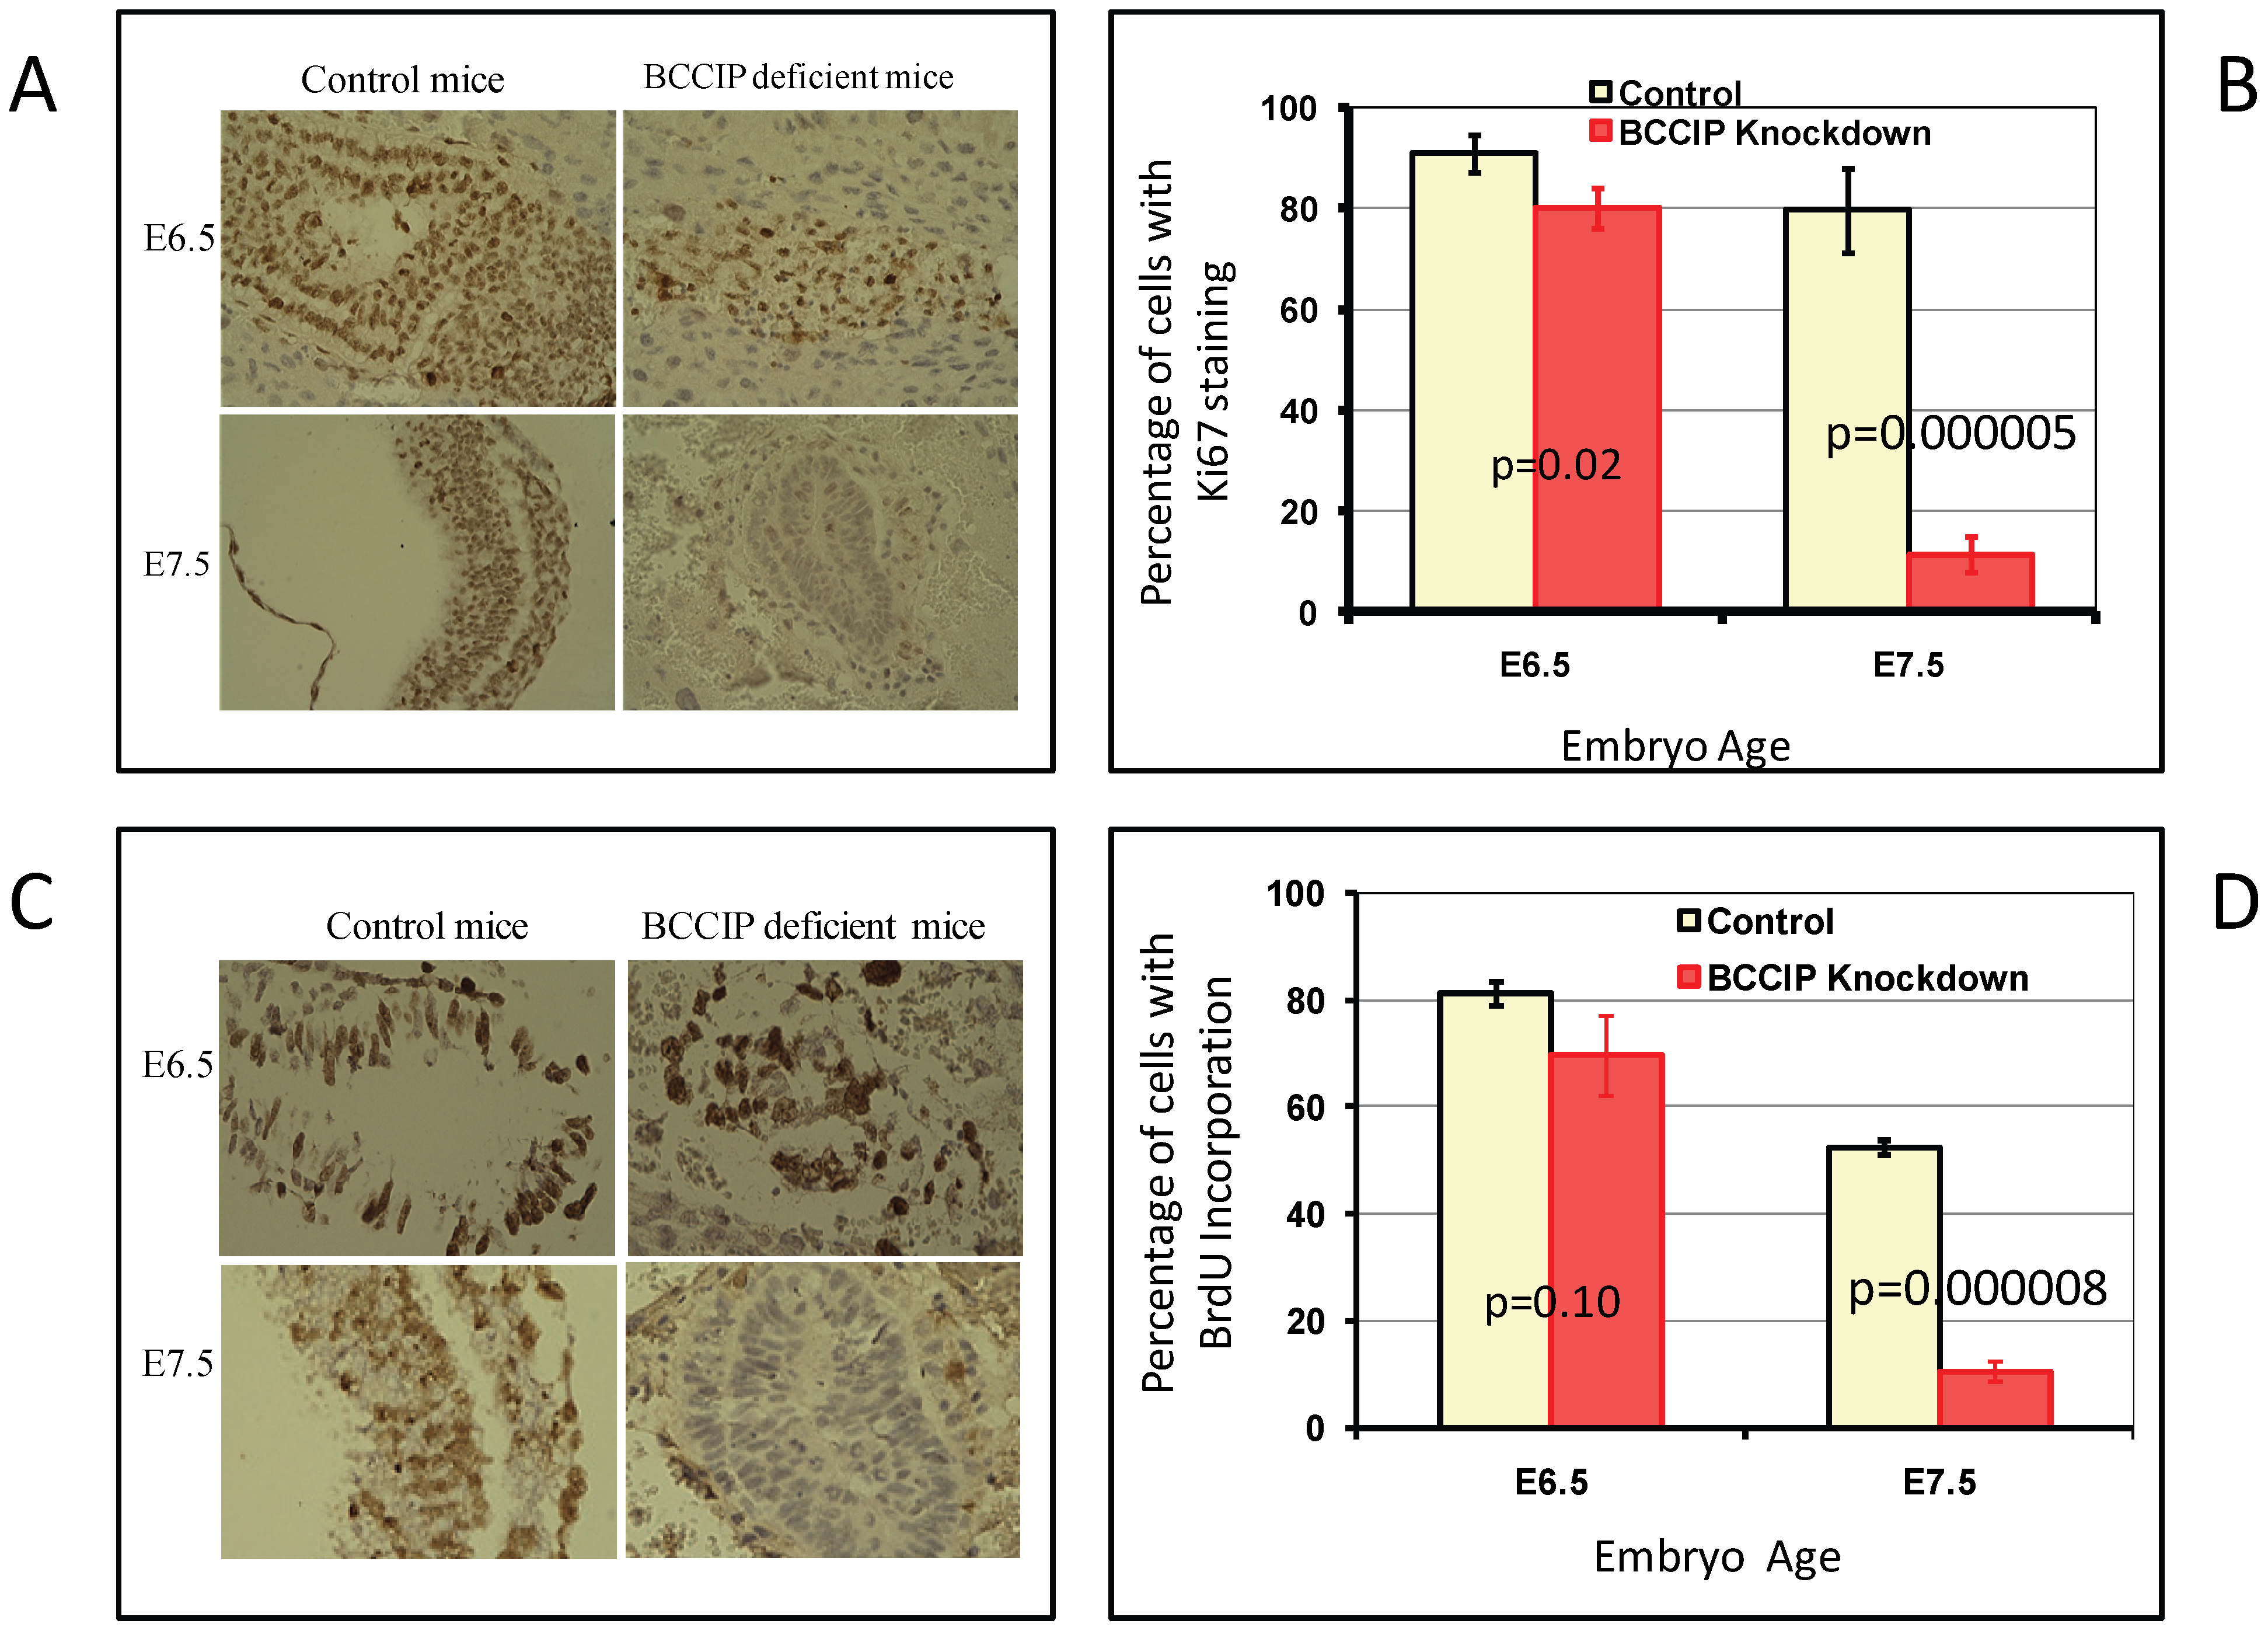 Proliferation defects in BCCIP deficient embryos.